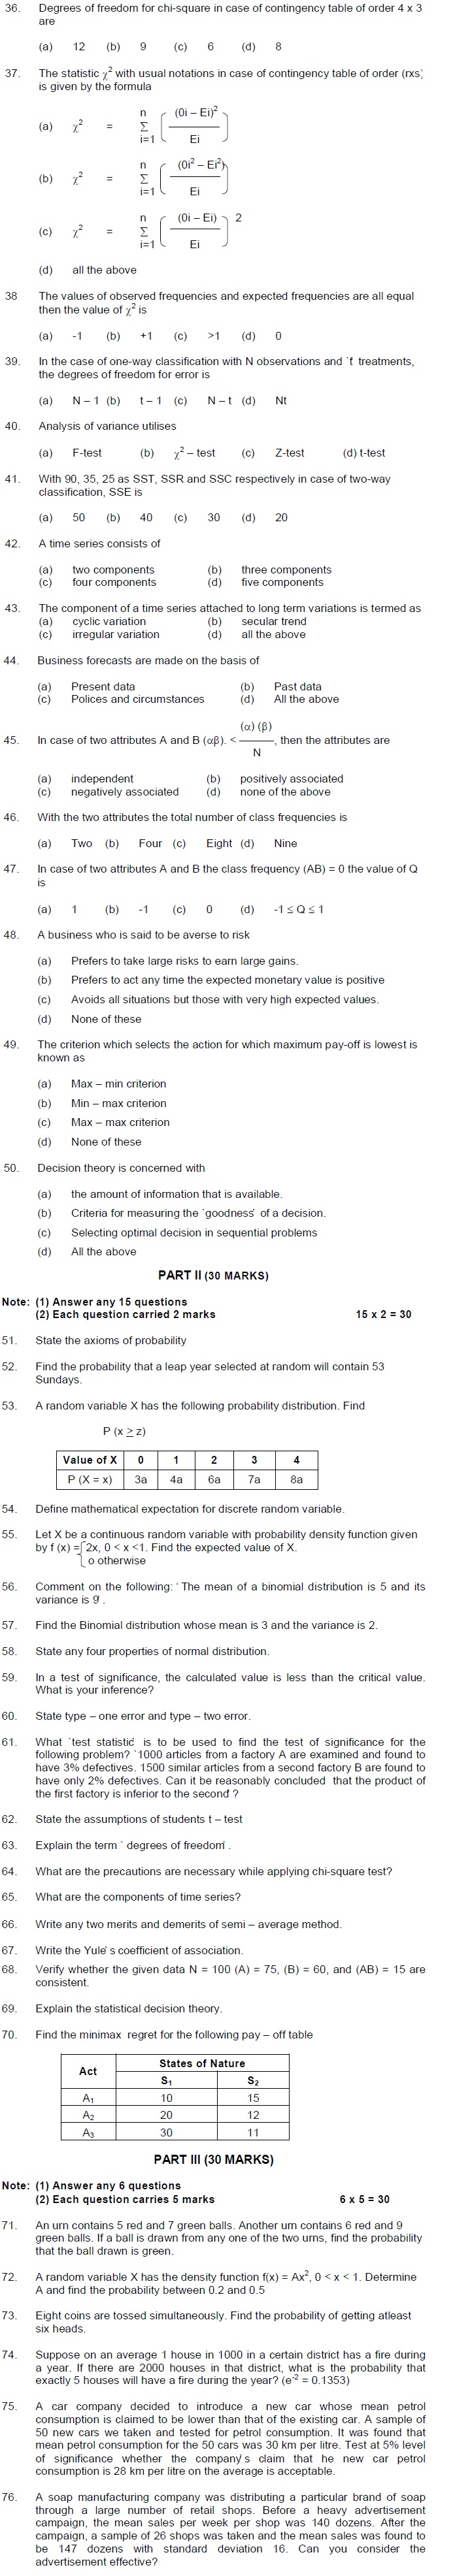 statistics model question paper Karnataka 2nd puc question papers 2016 download for free anna university 12th result 10th result 2017 diploma result results contact karnataka 2nd puc question papers 2016 previous model papers study materials 12th question papers, karnataka (statistics,business.